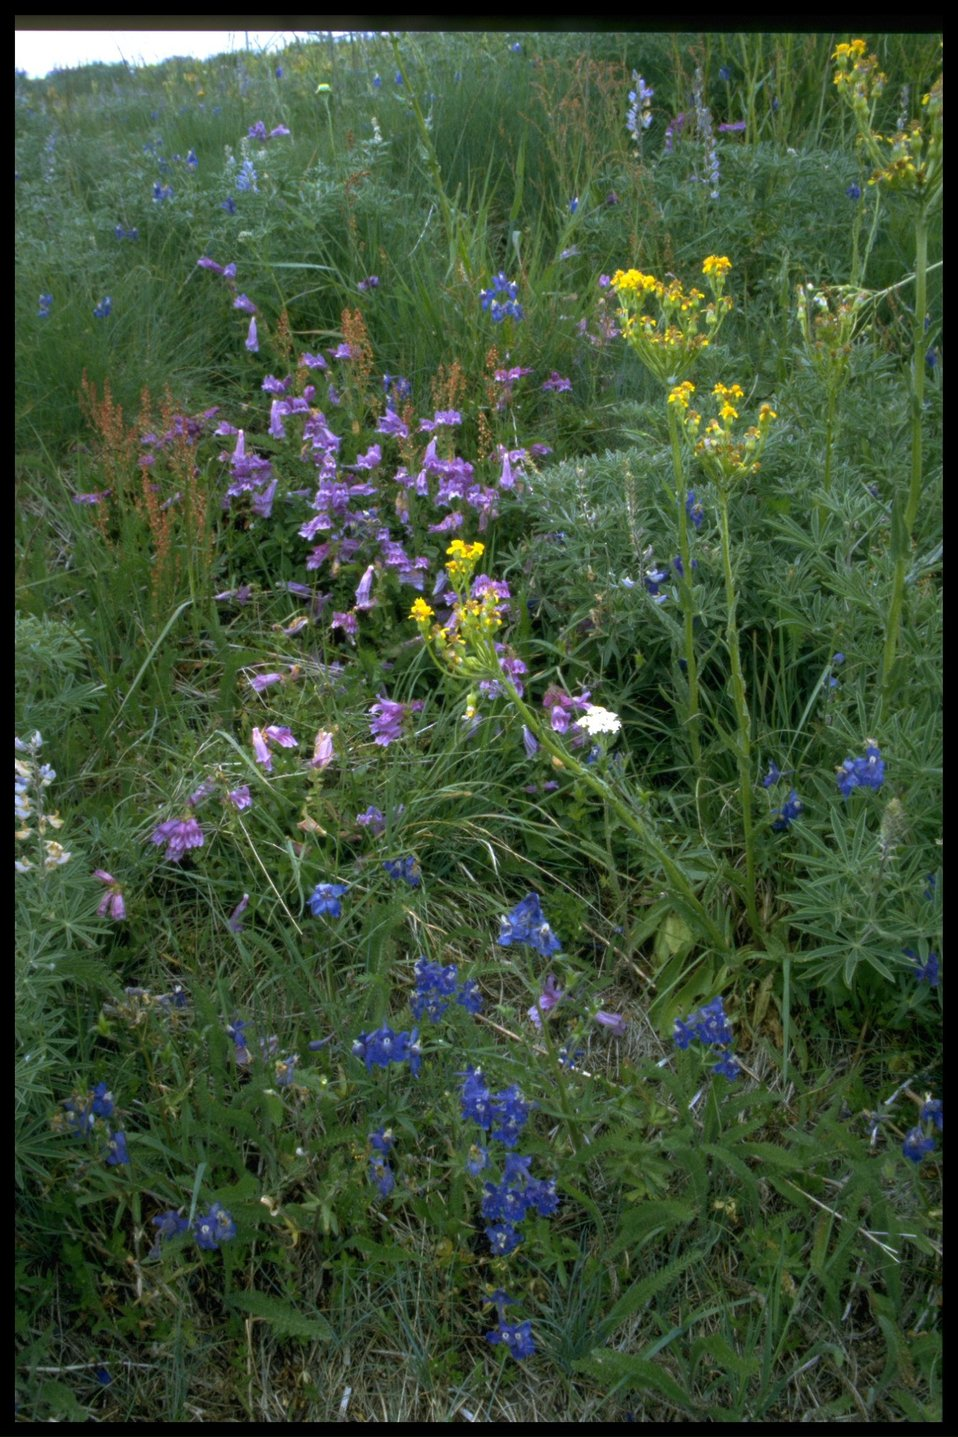 Medium shot of wildflowers (genus Lupinus, Penstemon, Senecio).